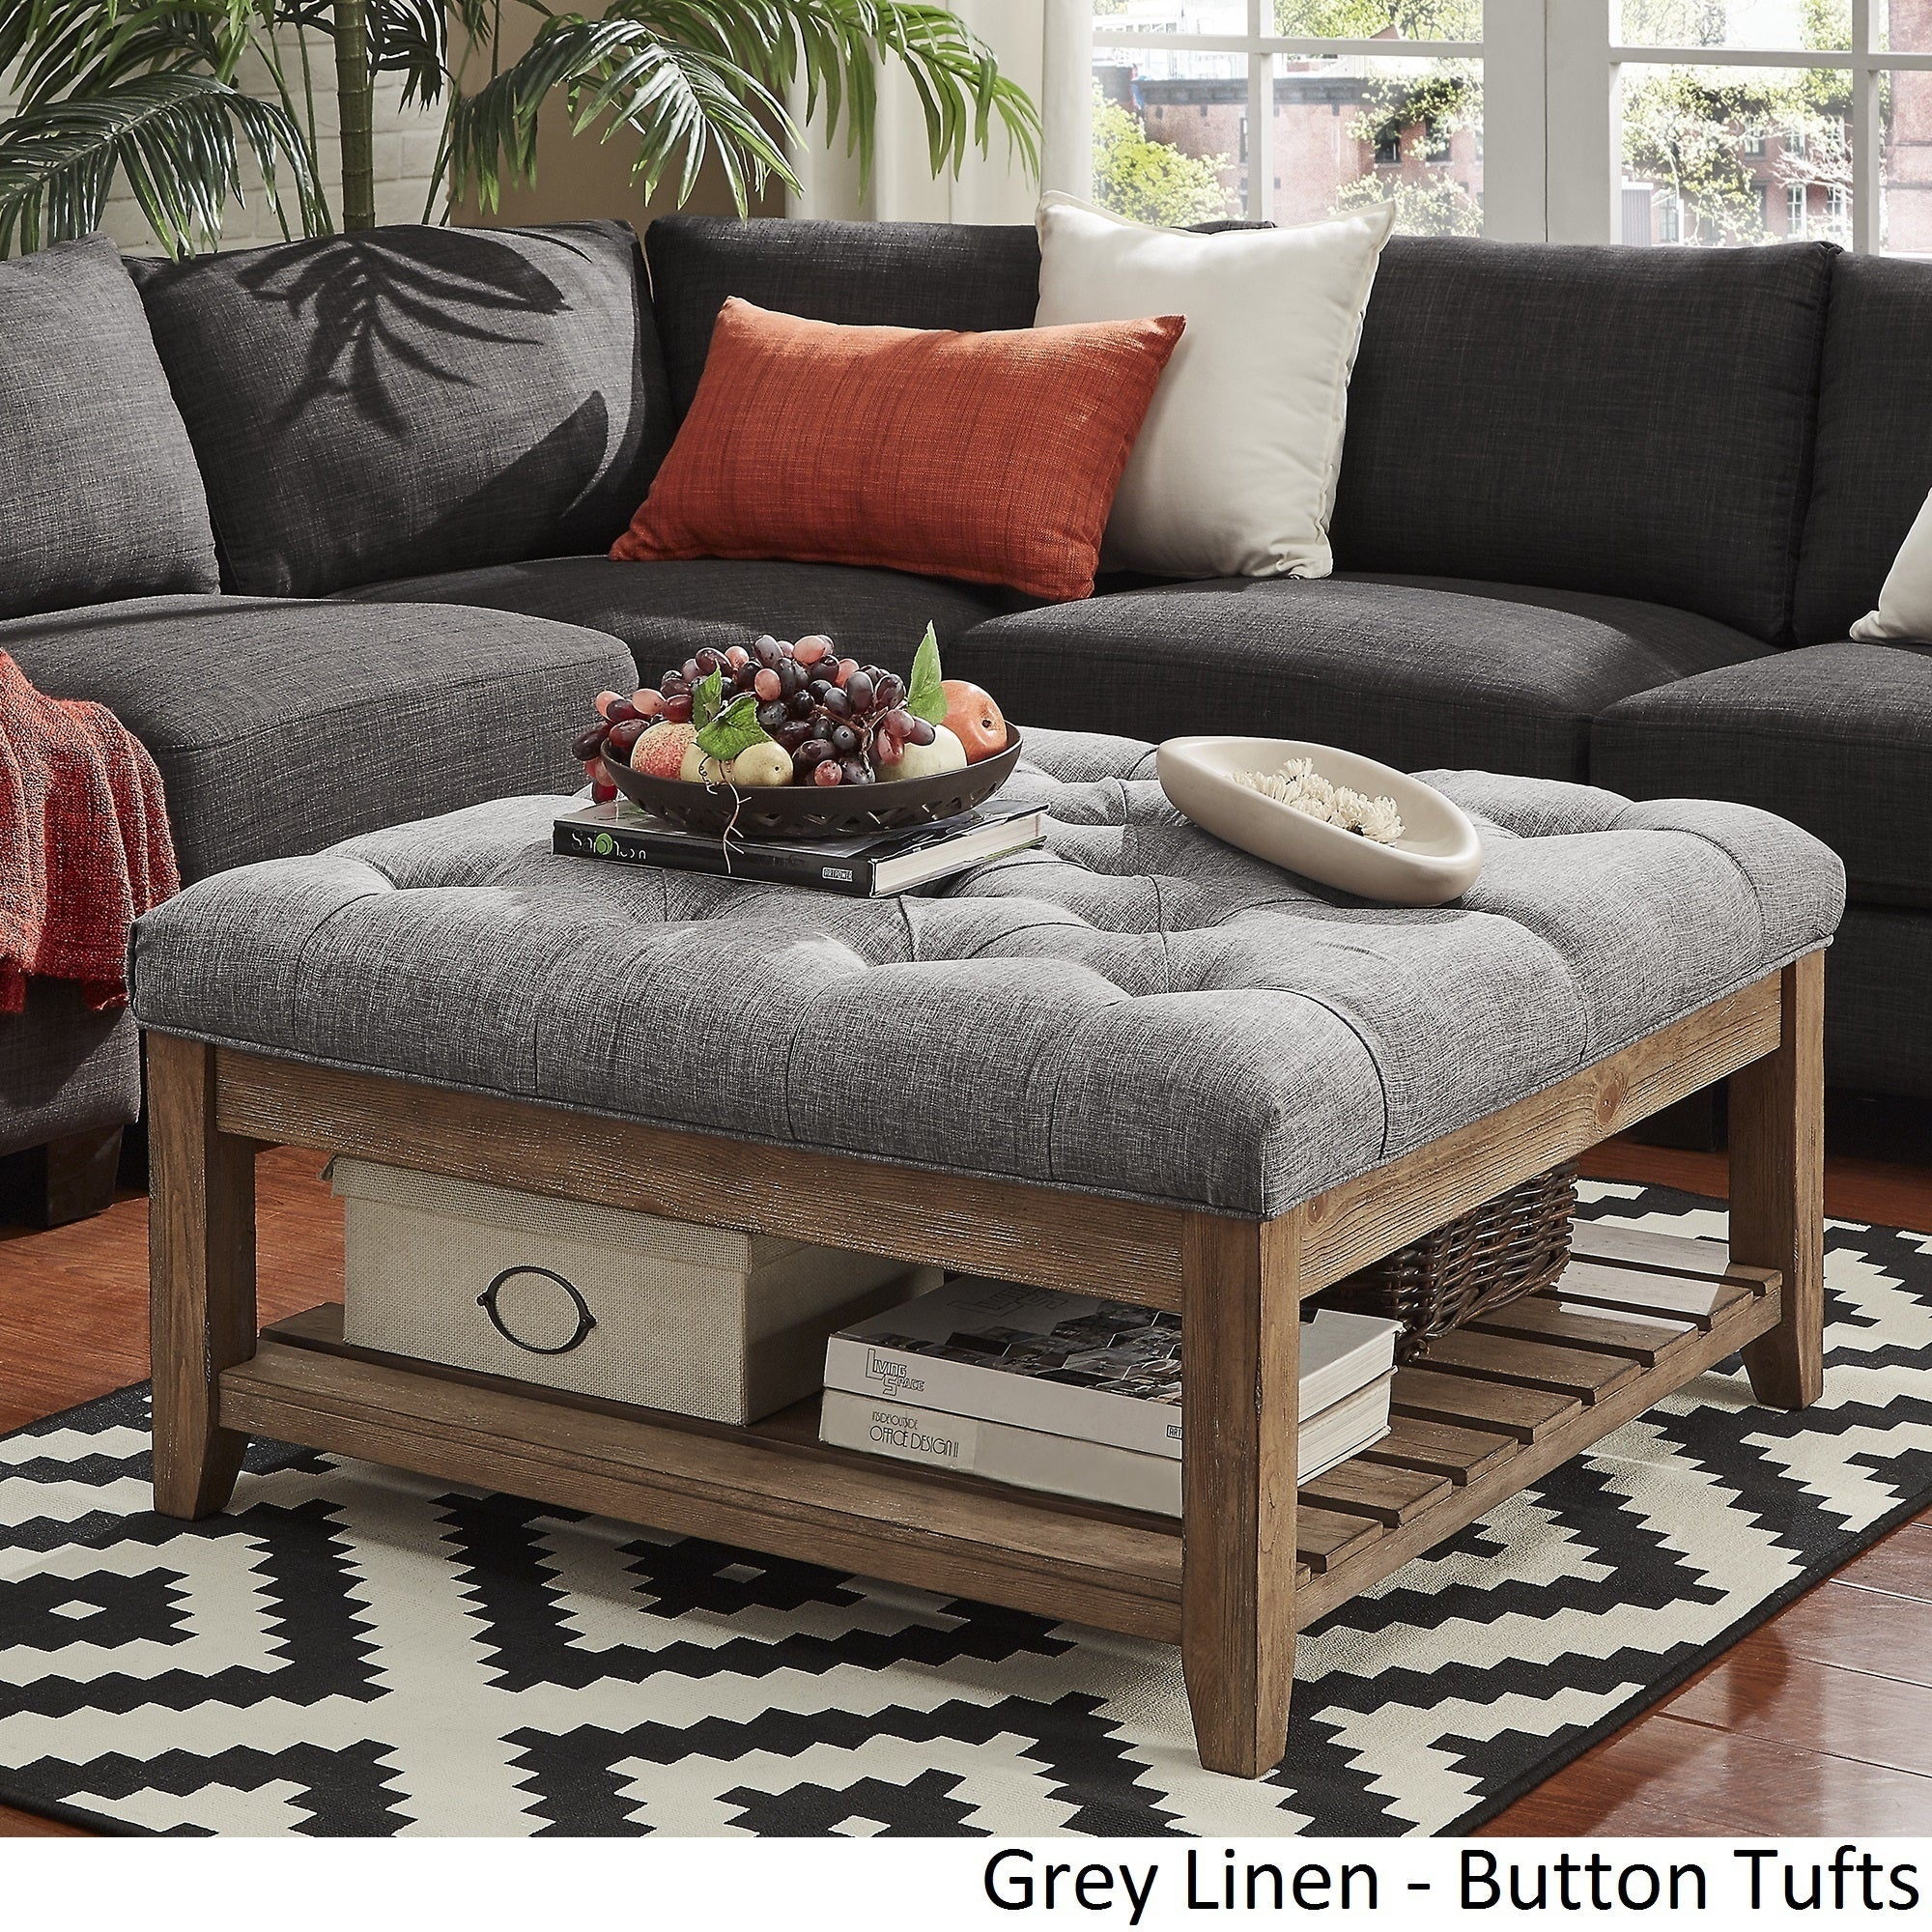 Lennon Pine Planked Storage Ottoman Coffee Table By Inspire Q On Free Shipping Today 13447192